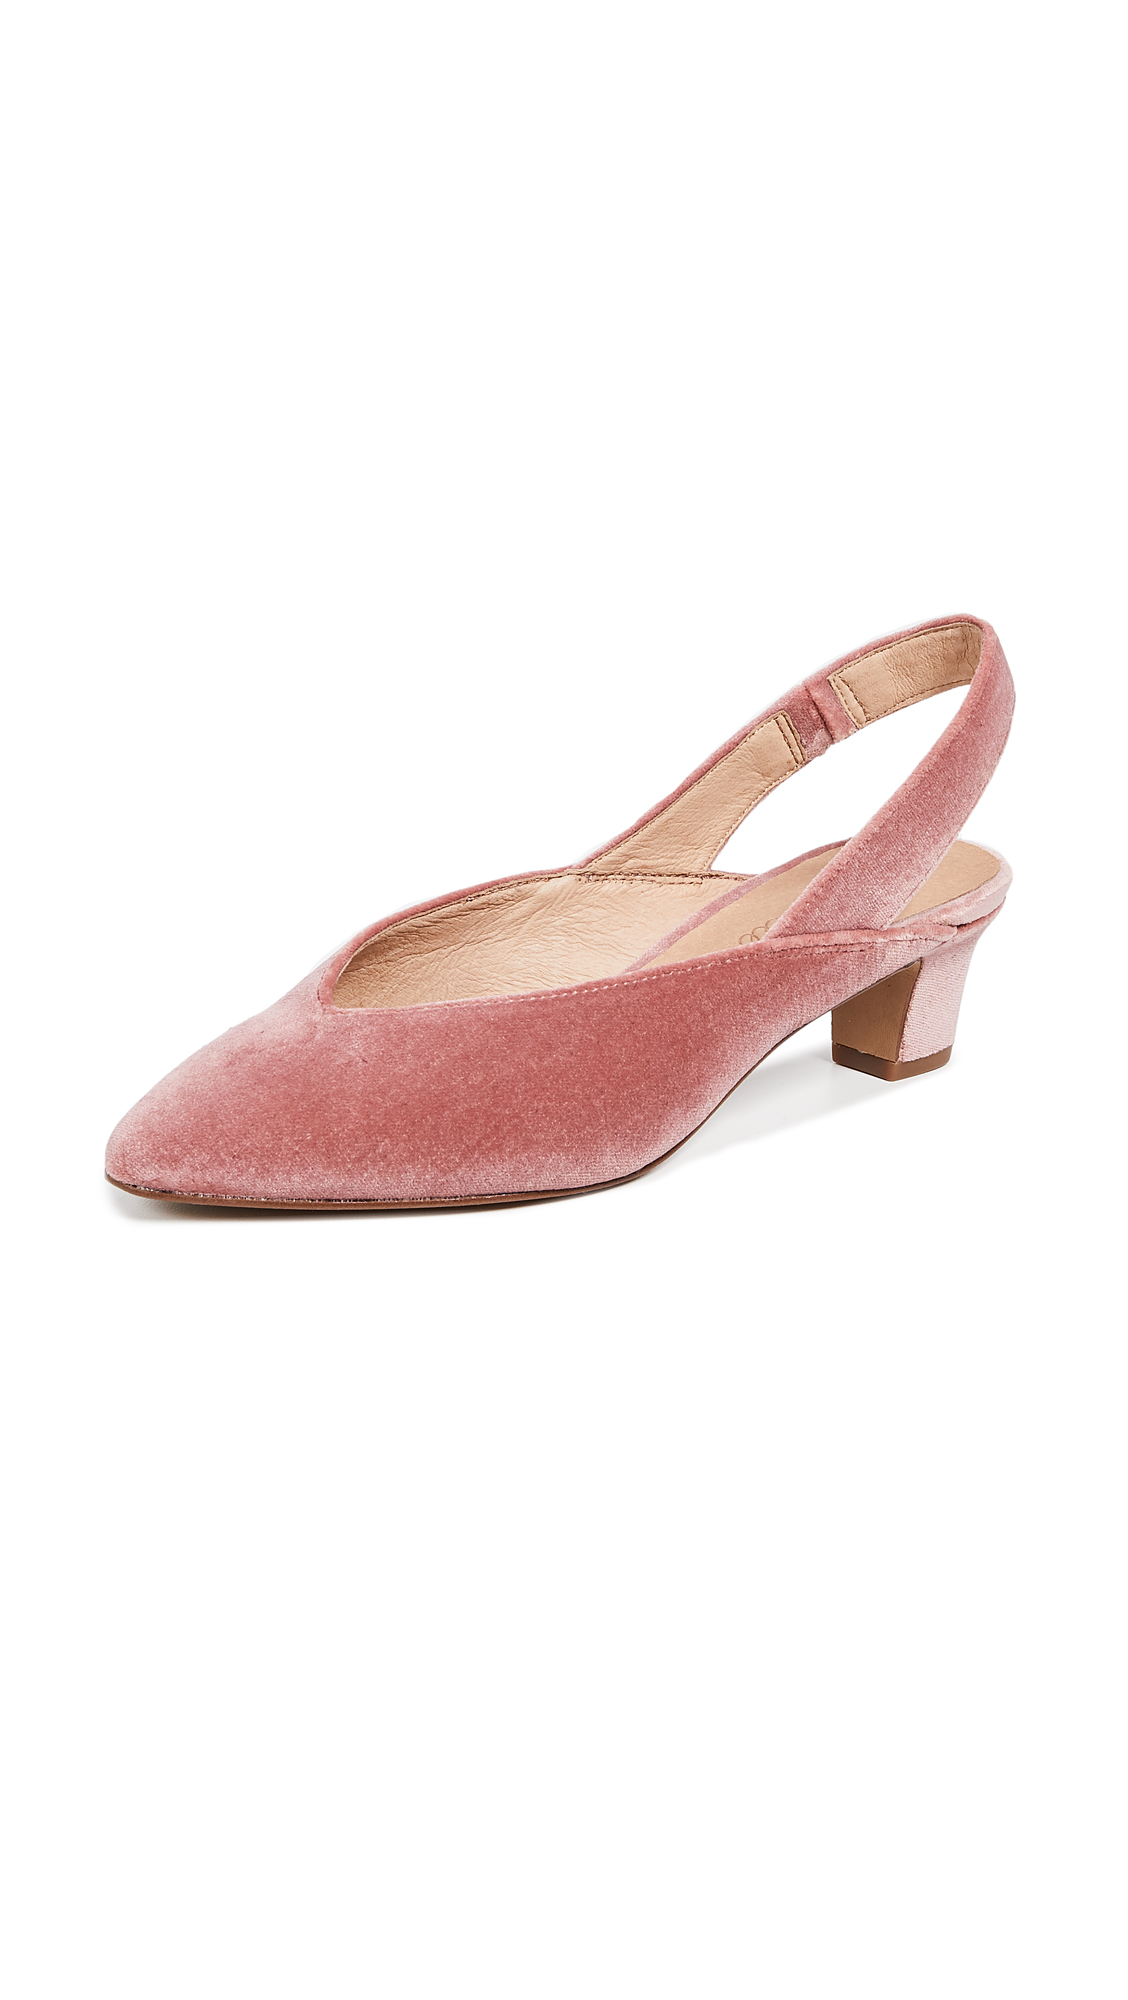 Madewell The Etta Slingback Pumps - Autumn Berry